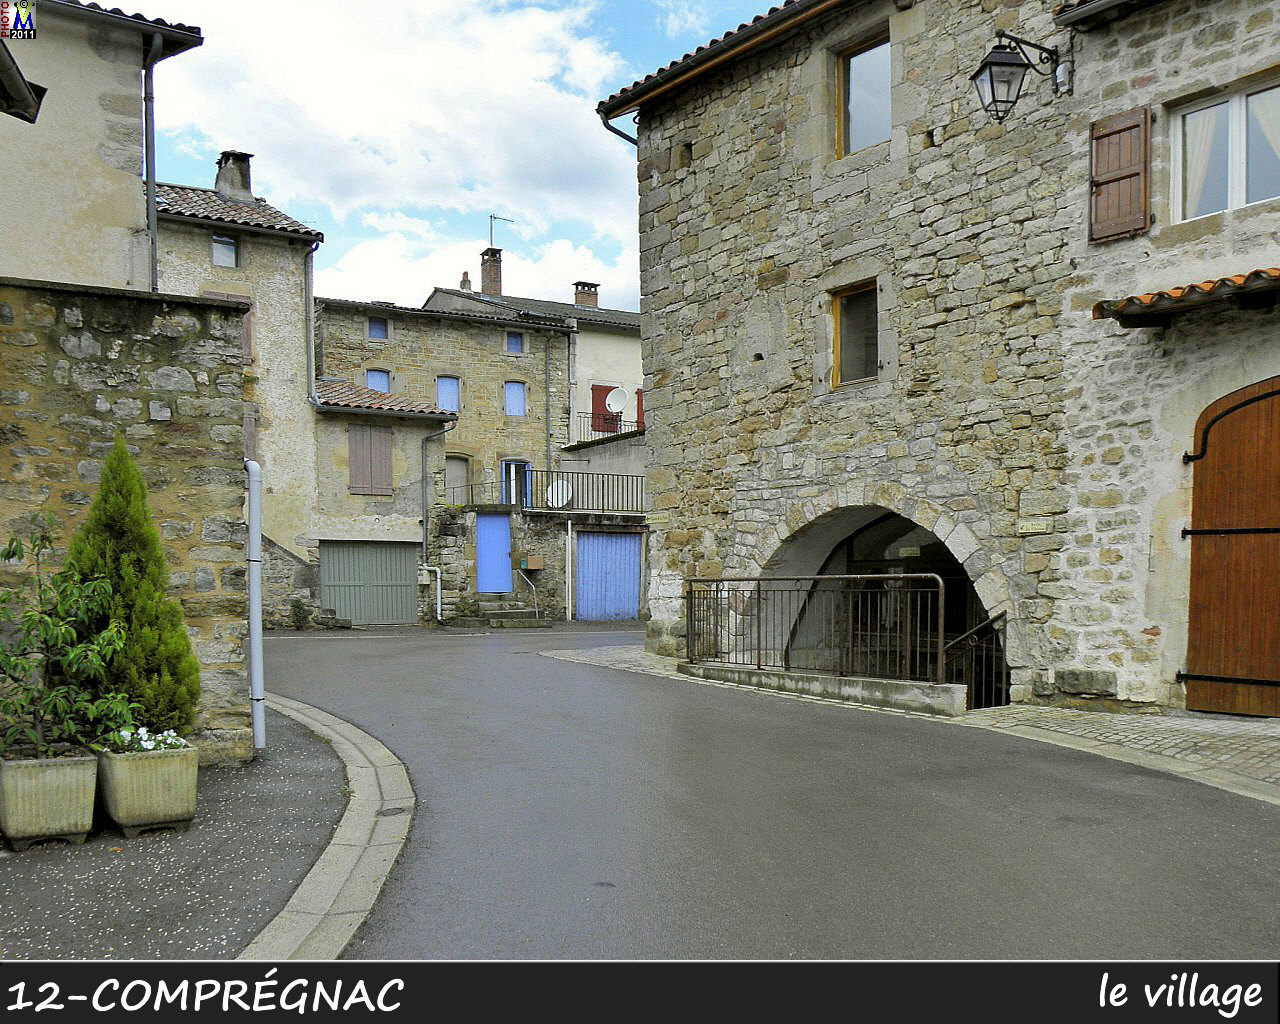 12COMPREGNAC_village_104.jpg